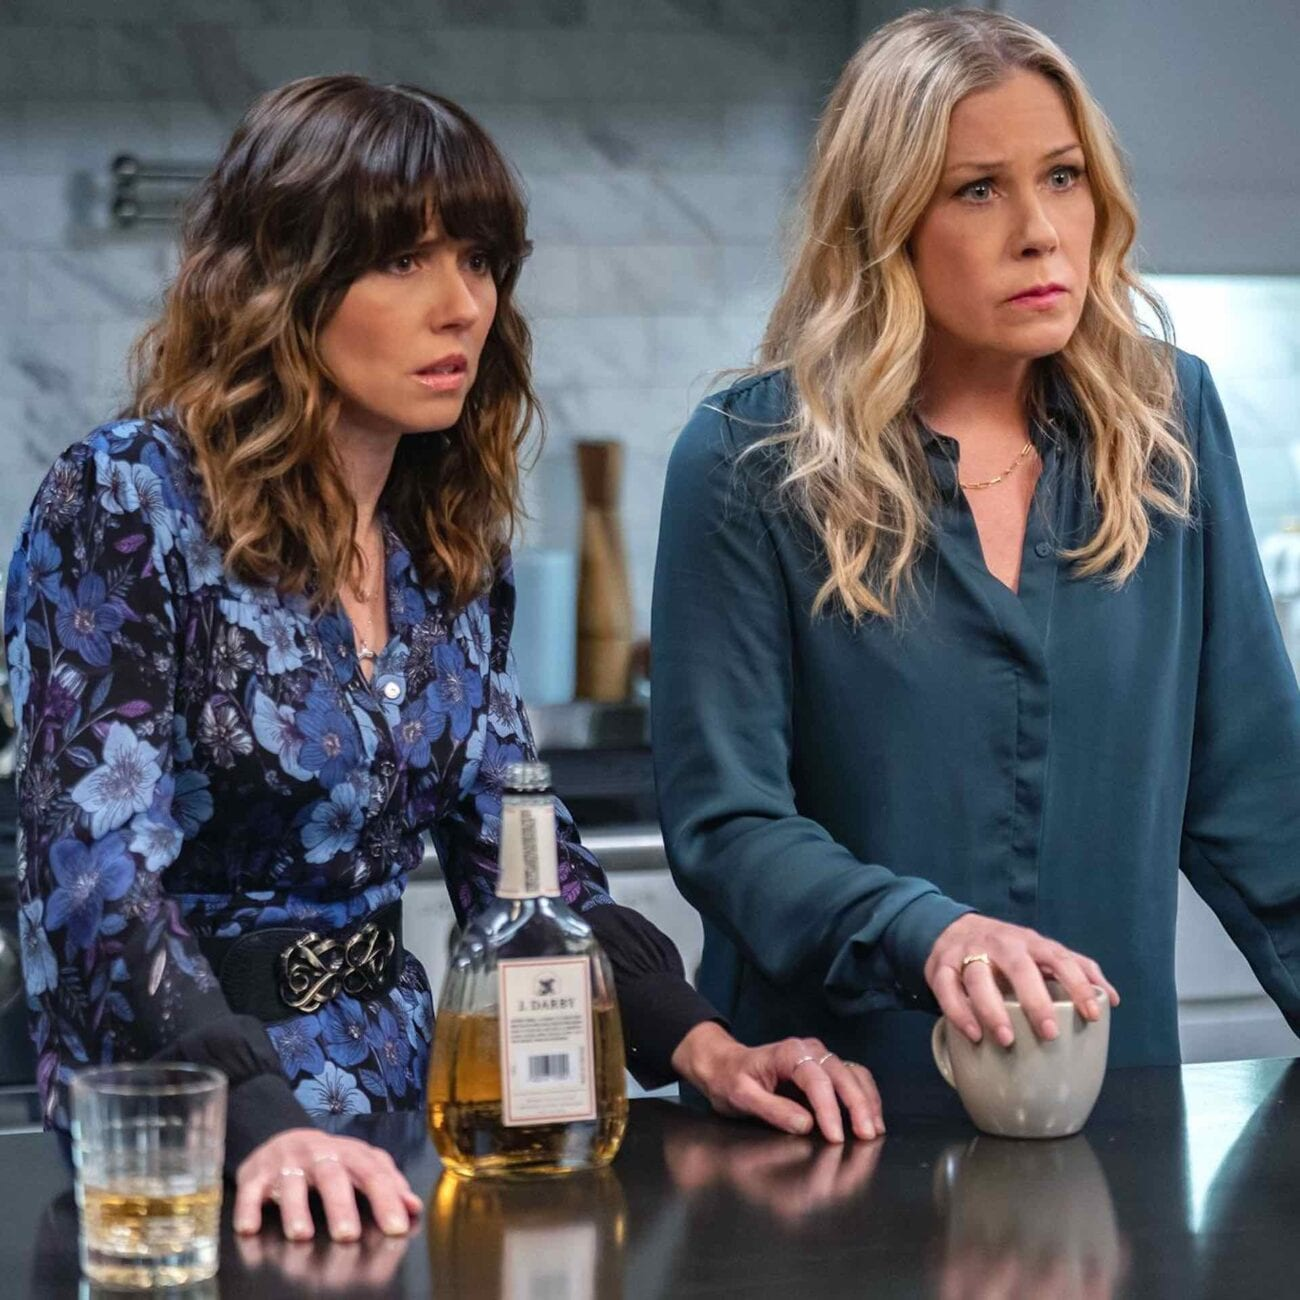 Netflix recently announced that 'Dead to Me' is officially renewed for season 3. Is this such a good idea? Here's what we know.